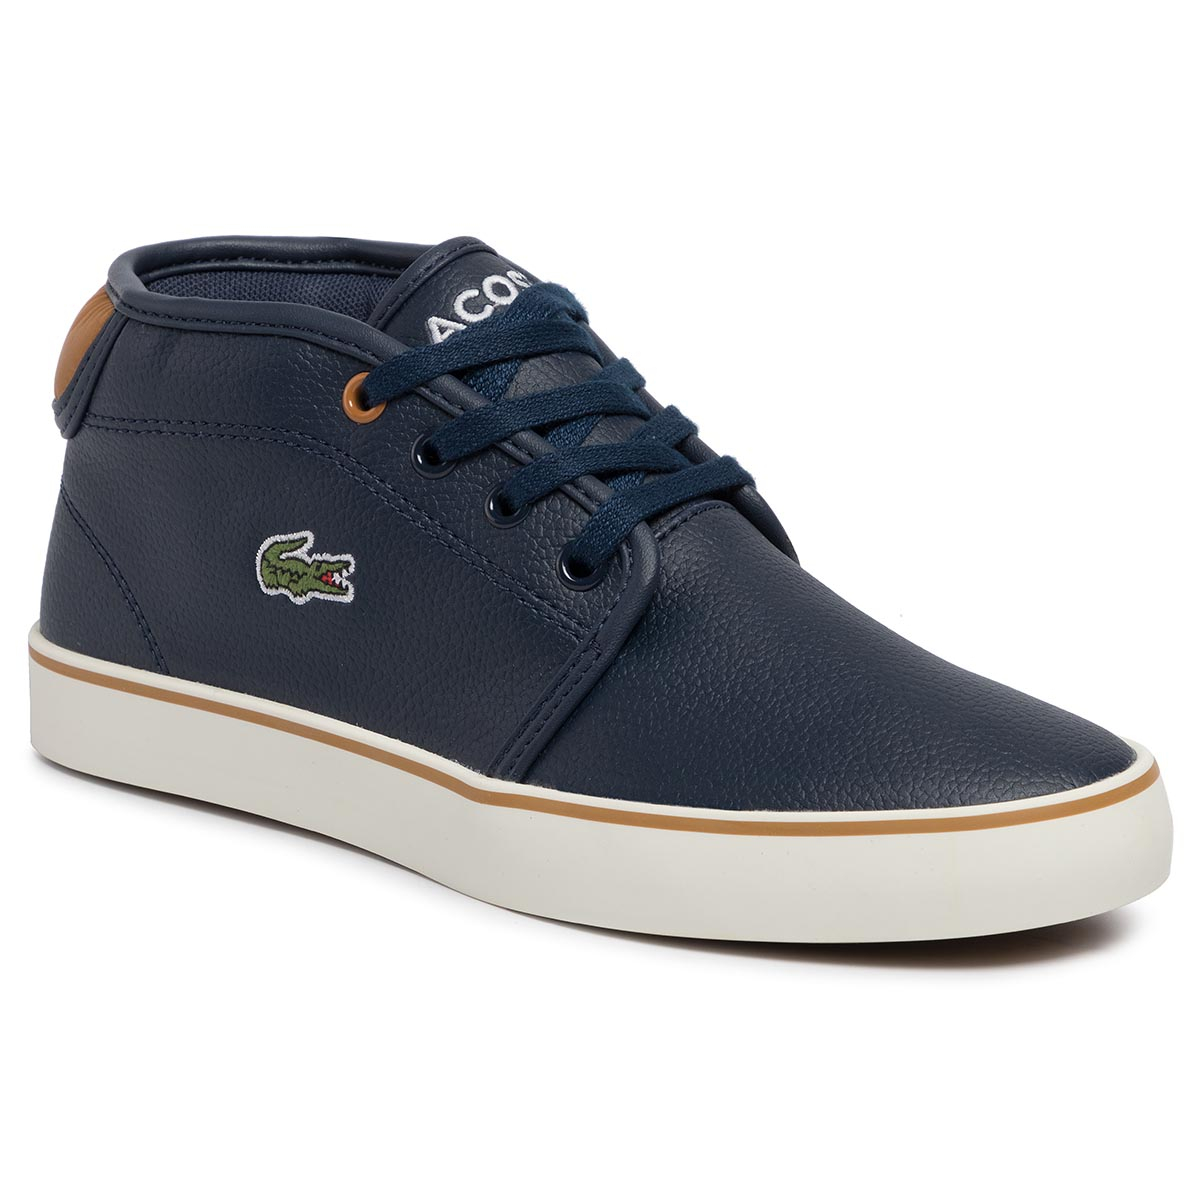 Sneakersy LACOSTE - Ampthill 319 1 Cuj 7-38CUJ0001NT1 Nvy/Tan